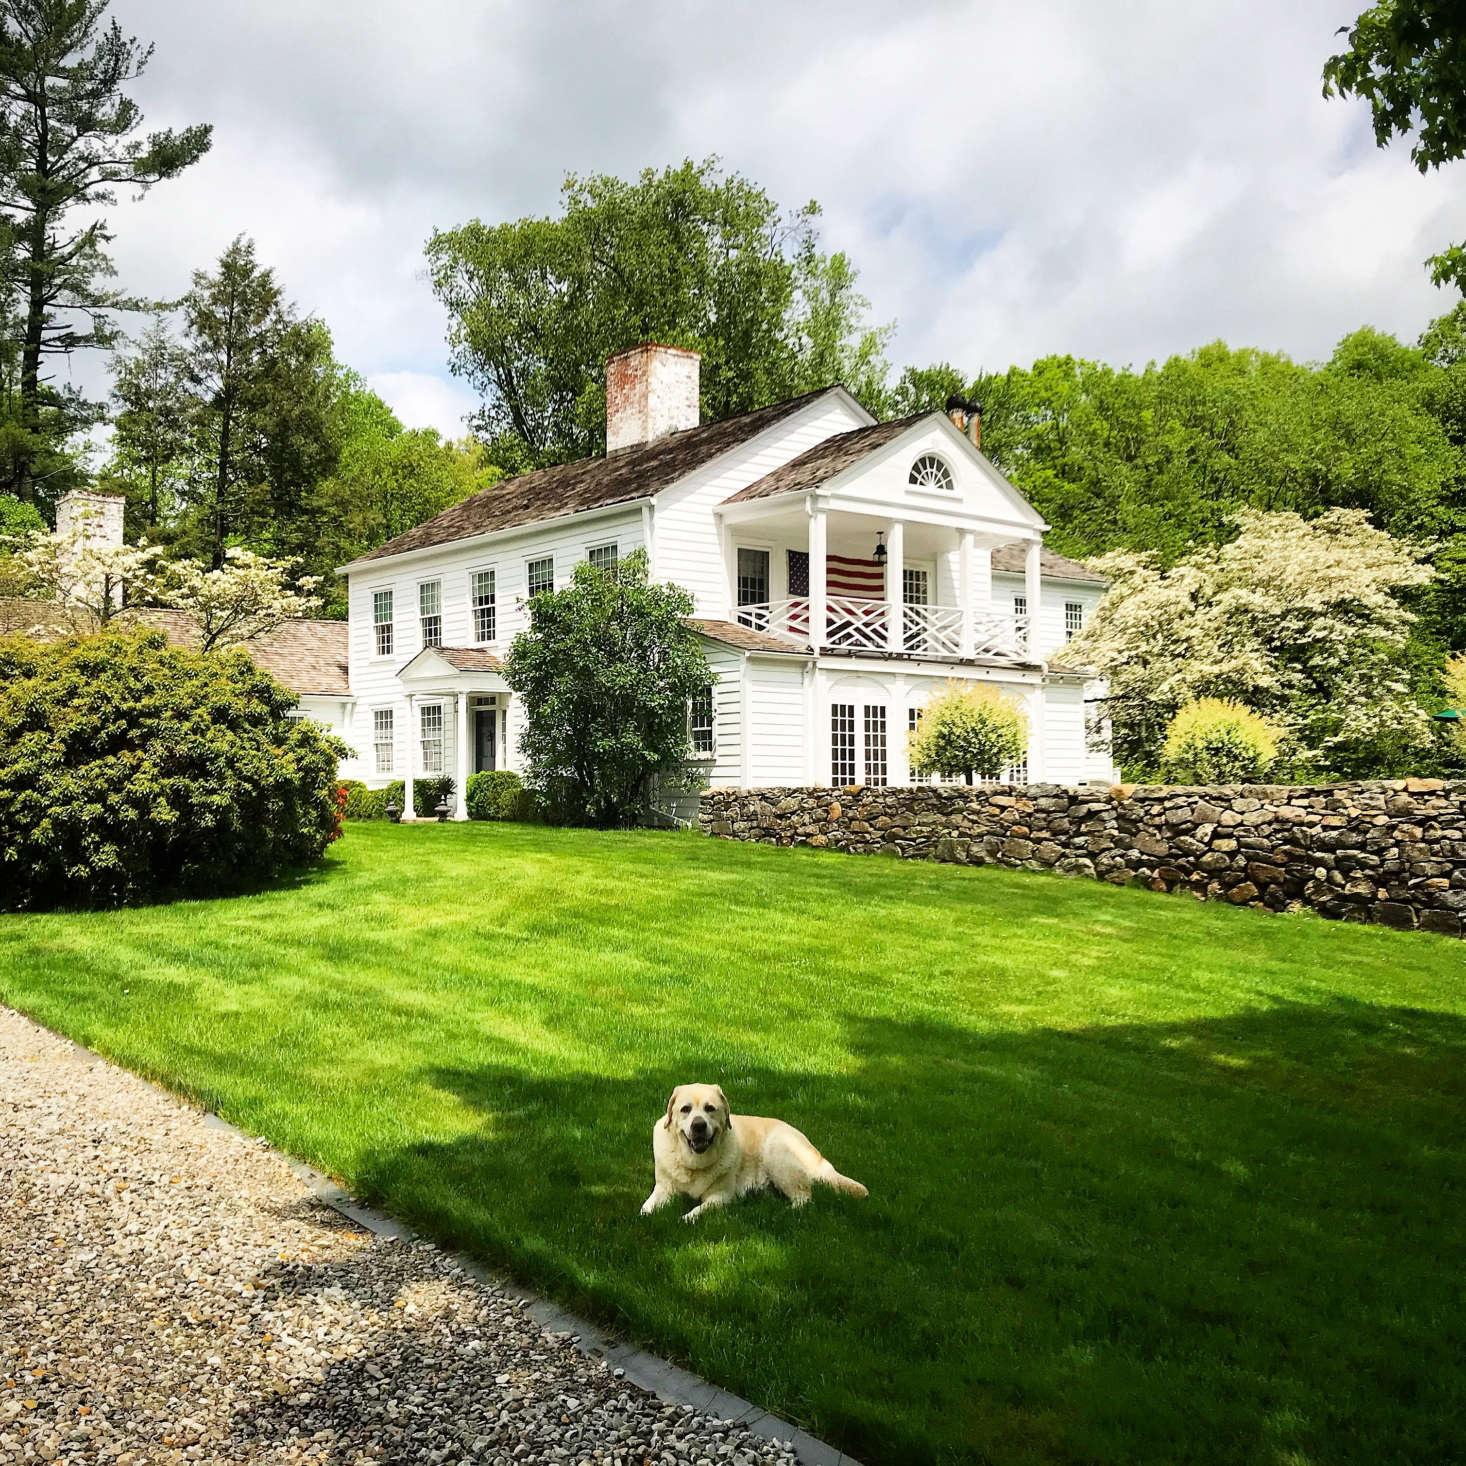 A Curb Appeal finalist in the 2018 Considered Design Awards, theQuintessential Connecticut Country Propertyin New Canaan, Connecticut, represents an updated take on a stately Connecticut farmhouse.